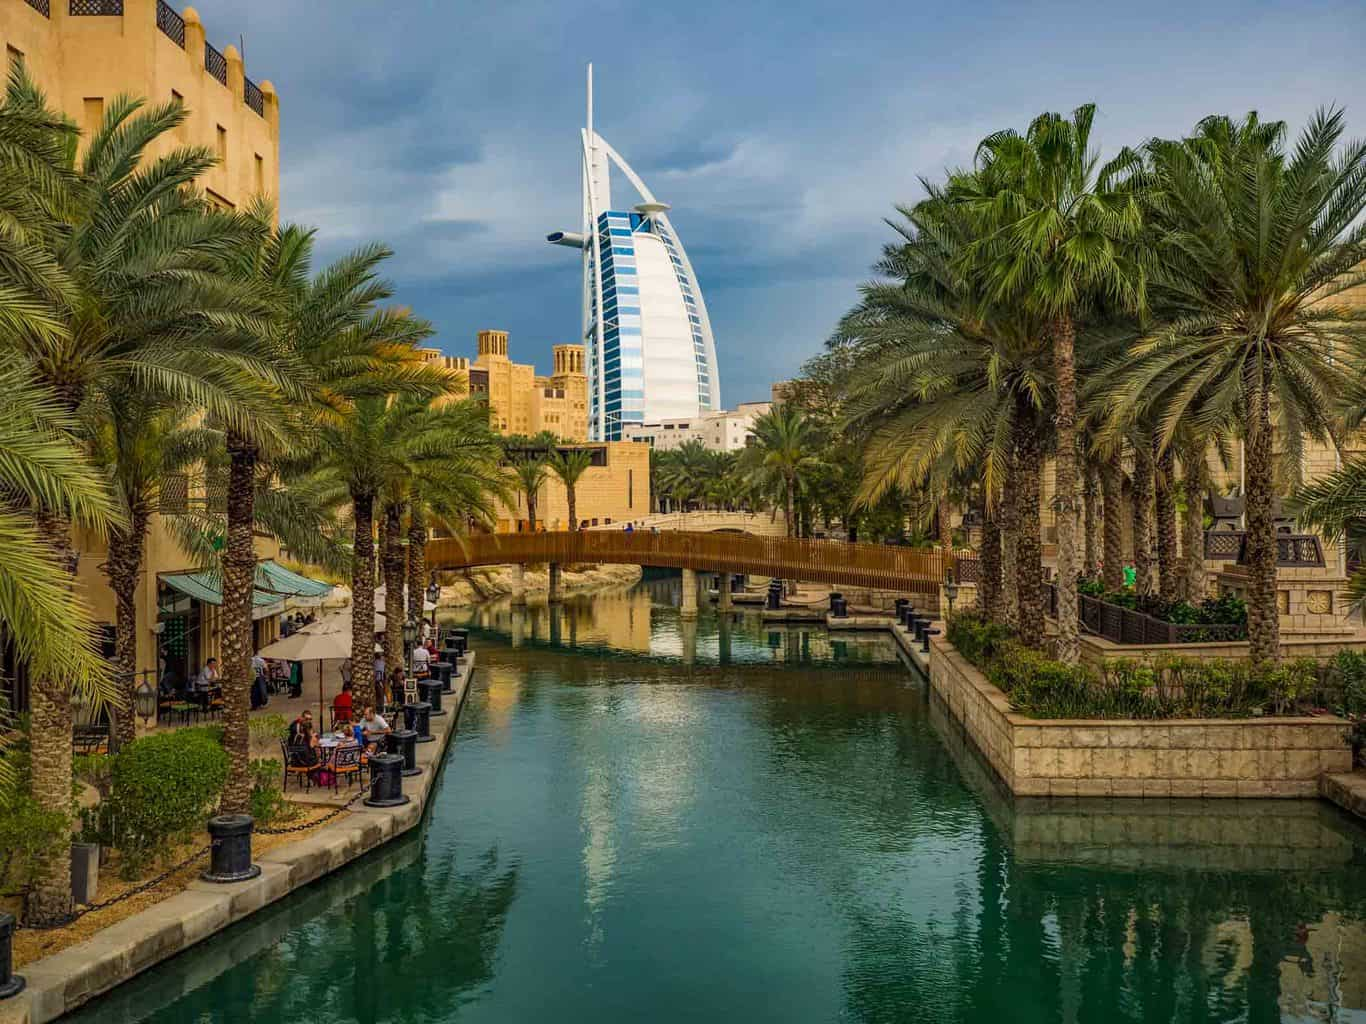 Madinat Jumeirah in Dubai with the famous Burj Al Arab hotel in the background travel guide